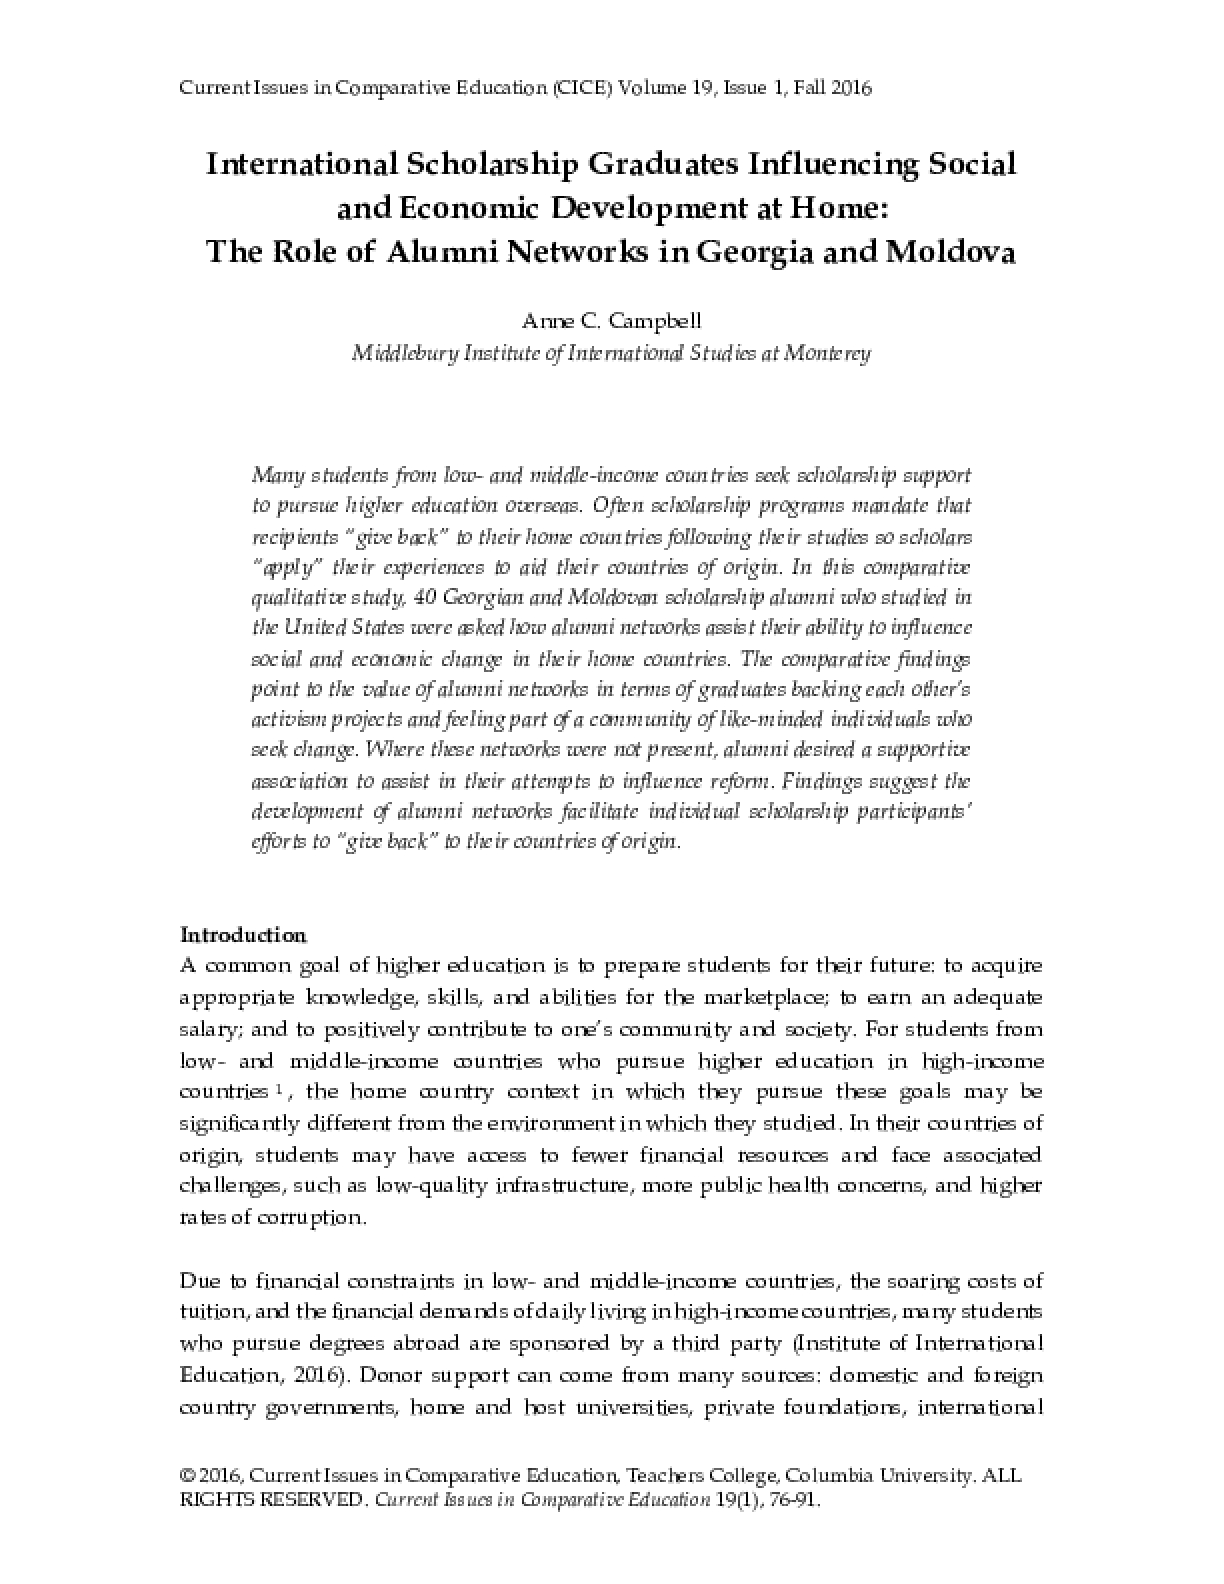 International Scholarship Graduates Influencing Social and Economic Development at Home: The Role of Alumni Networks in Georgia and Moldova